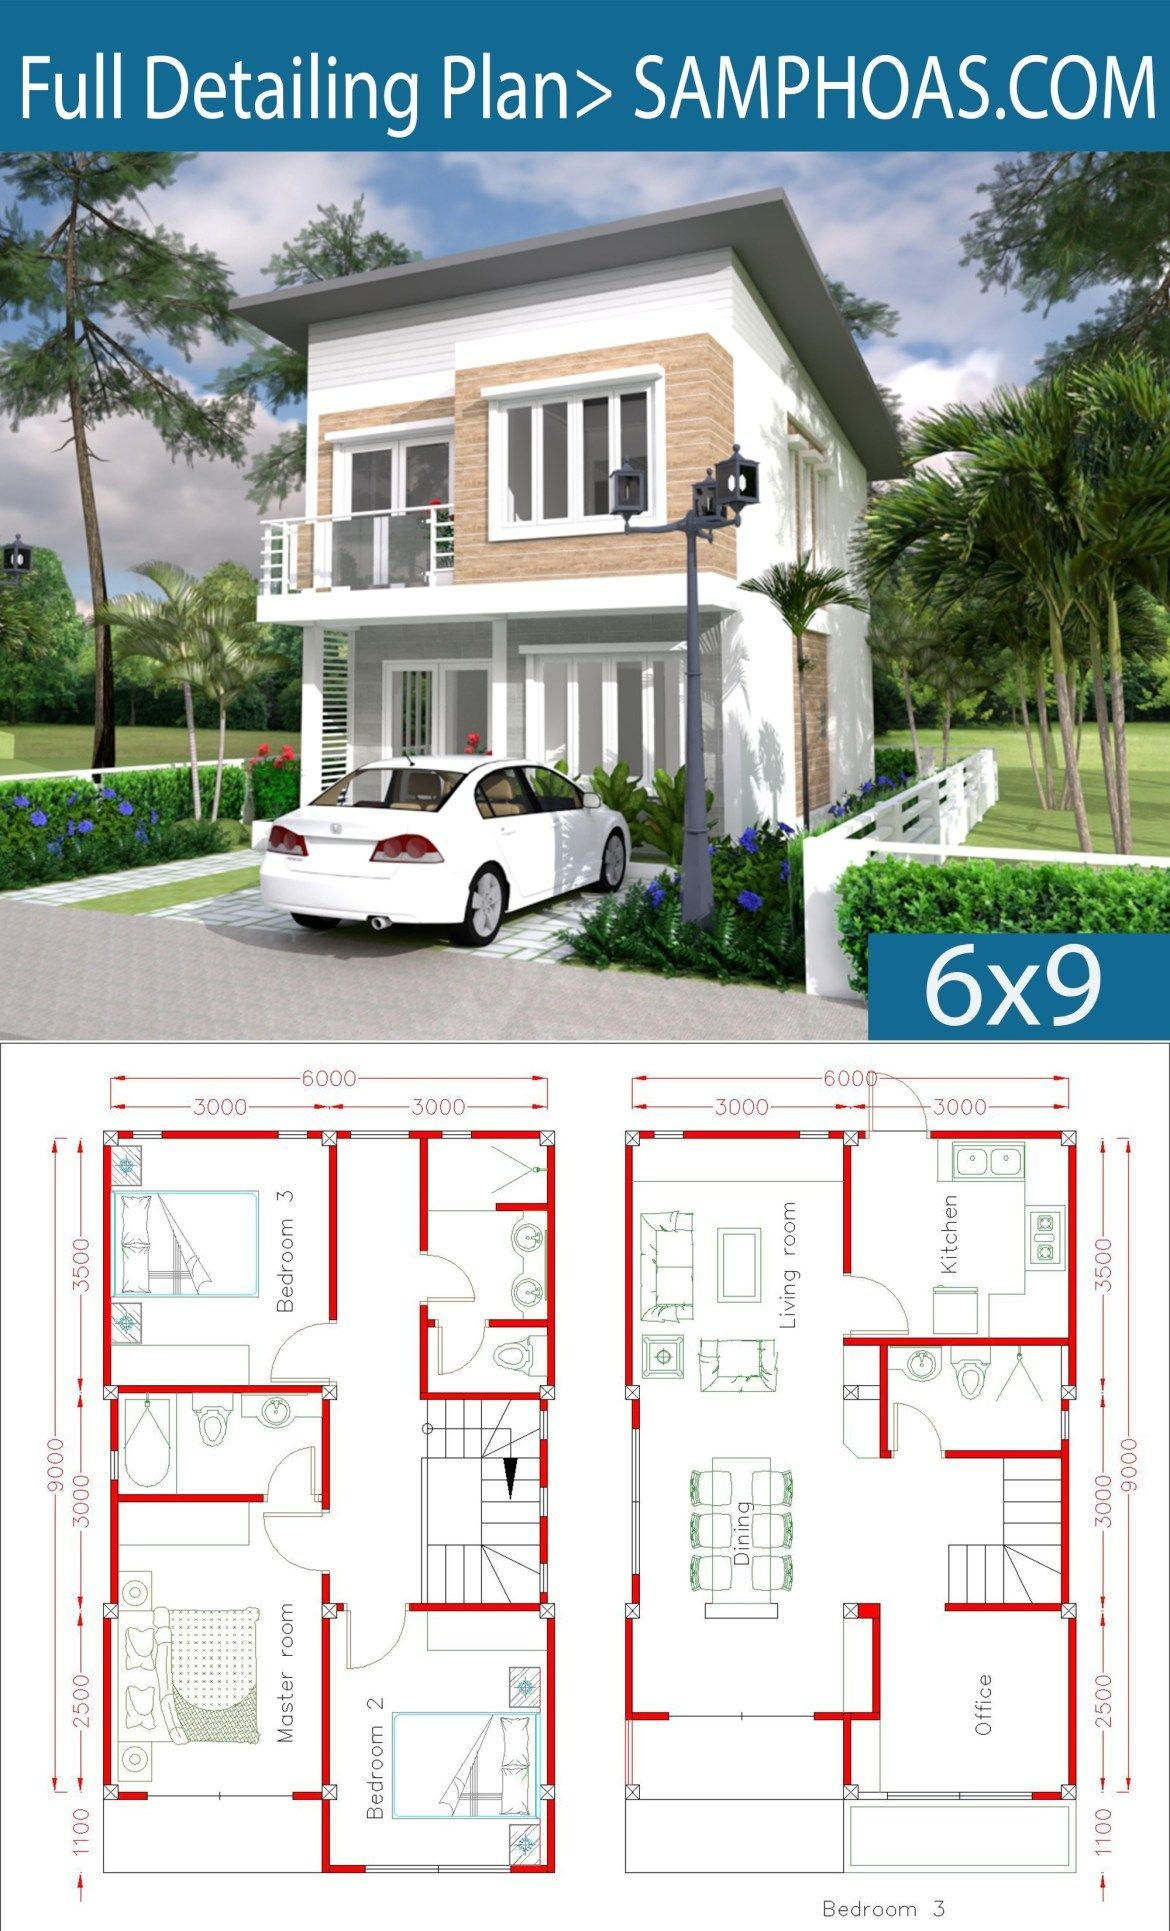 Simple Home Design Plan 6x9m With 3 Bedrooms Casaspequenas Simple Home Design Plan 6x9m With 3 Bedroo Simple House Design Simple House House Construction Plan